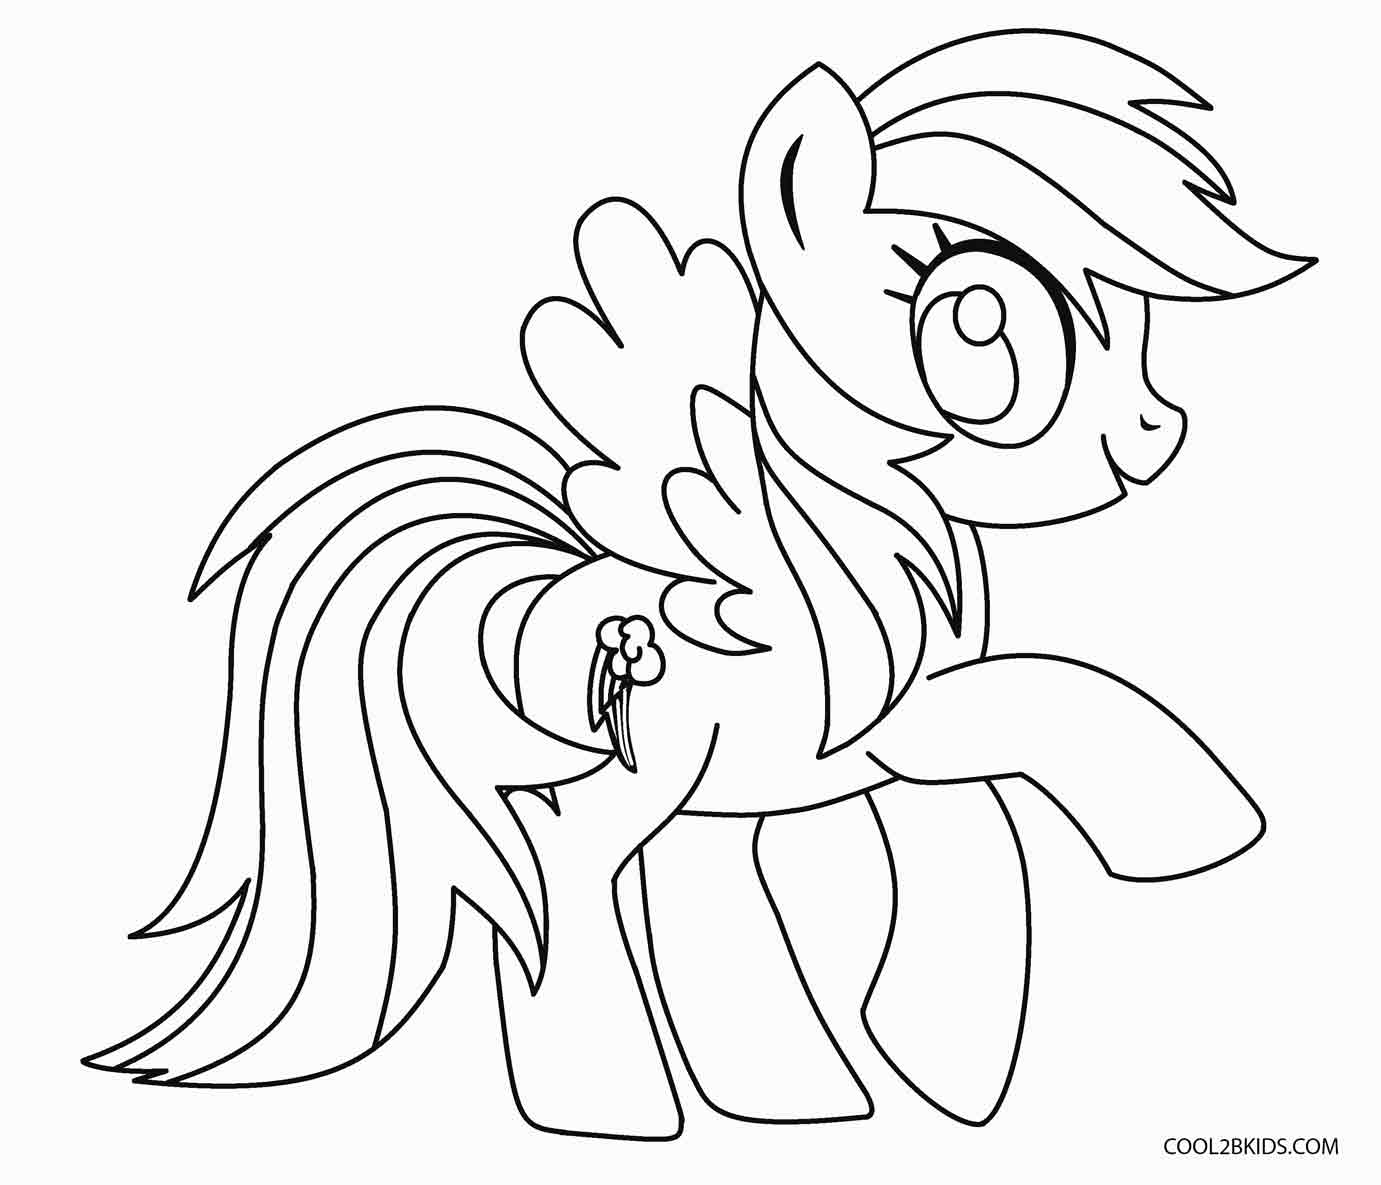 pictures of rainbow dash my little pony fun learn free worksheets for kid rainbow dash dash my little rainbow of pictures pony